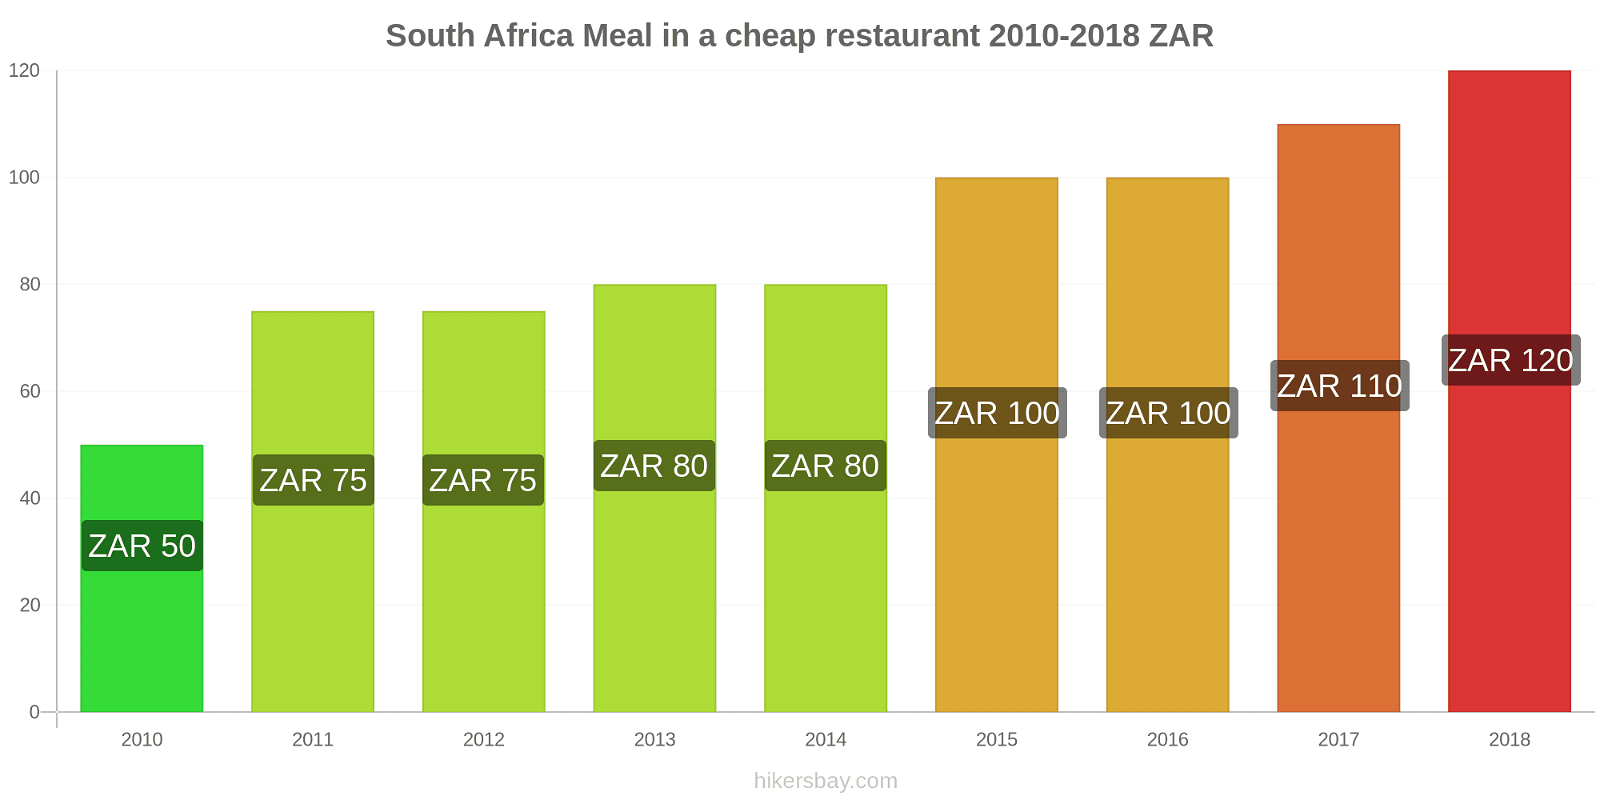 South Africa price changes Meal in a cheap restaurant hikersbay.com